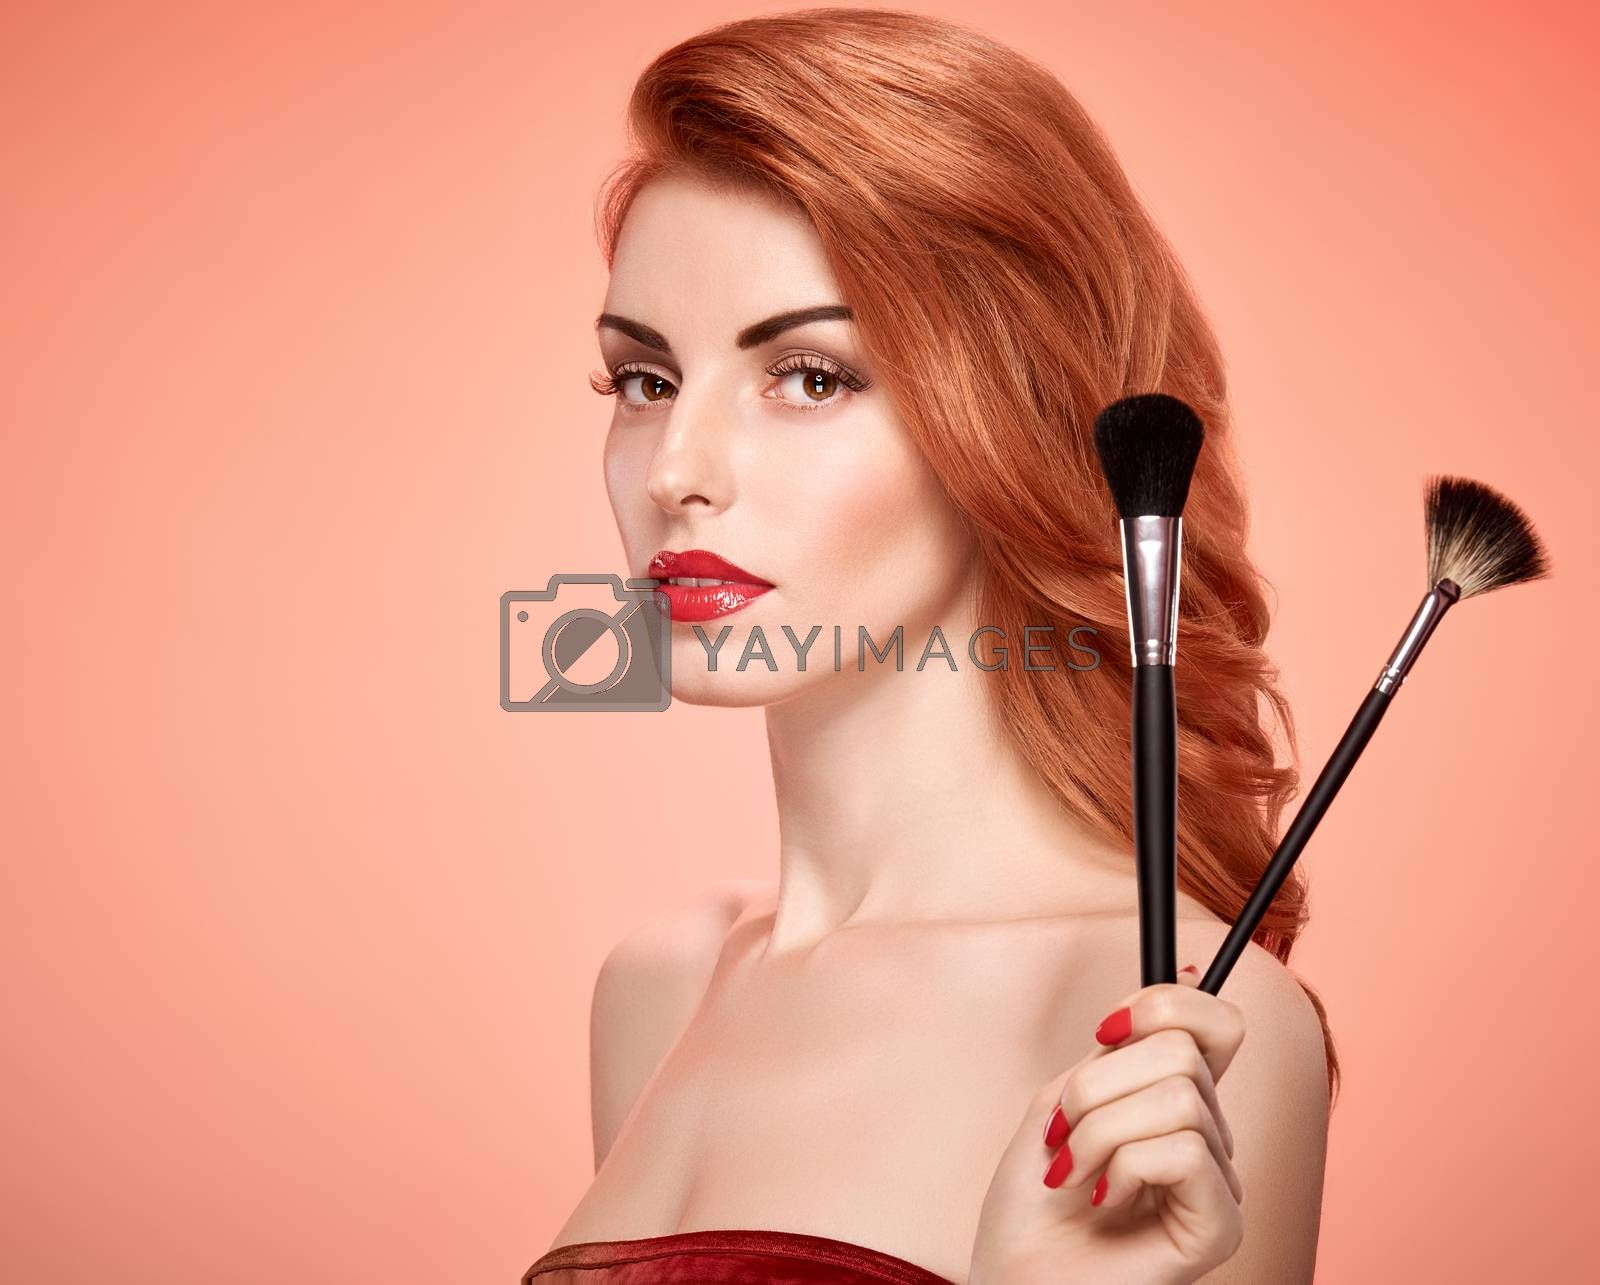 Beauty portrait nude woman eyelashes, perfect skin, red lips, fashion. Gorgeous sensual attractive pretty redhead sexy model girl with makeup brushes on pink, shiny wavy hair. People face, copyspace